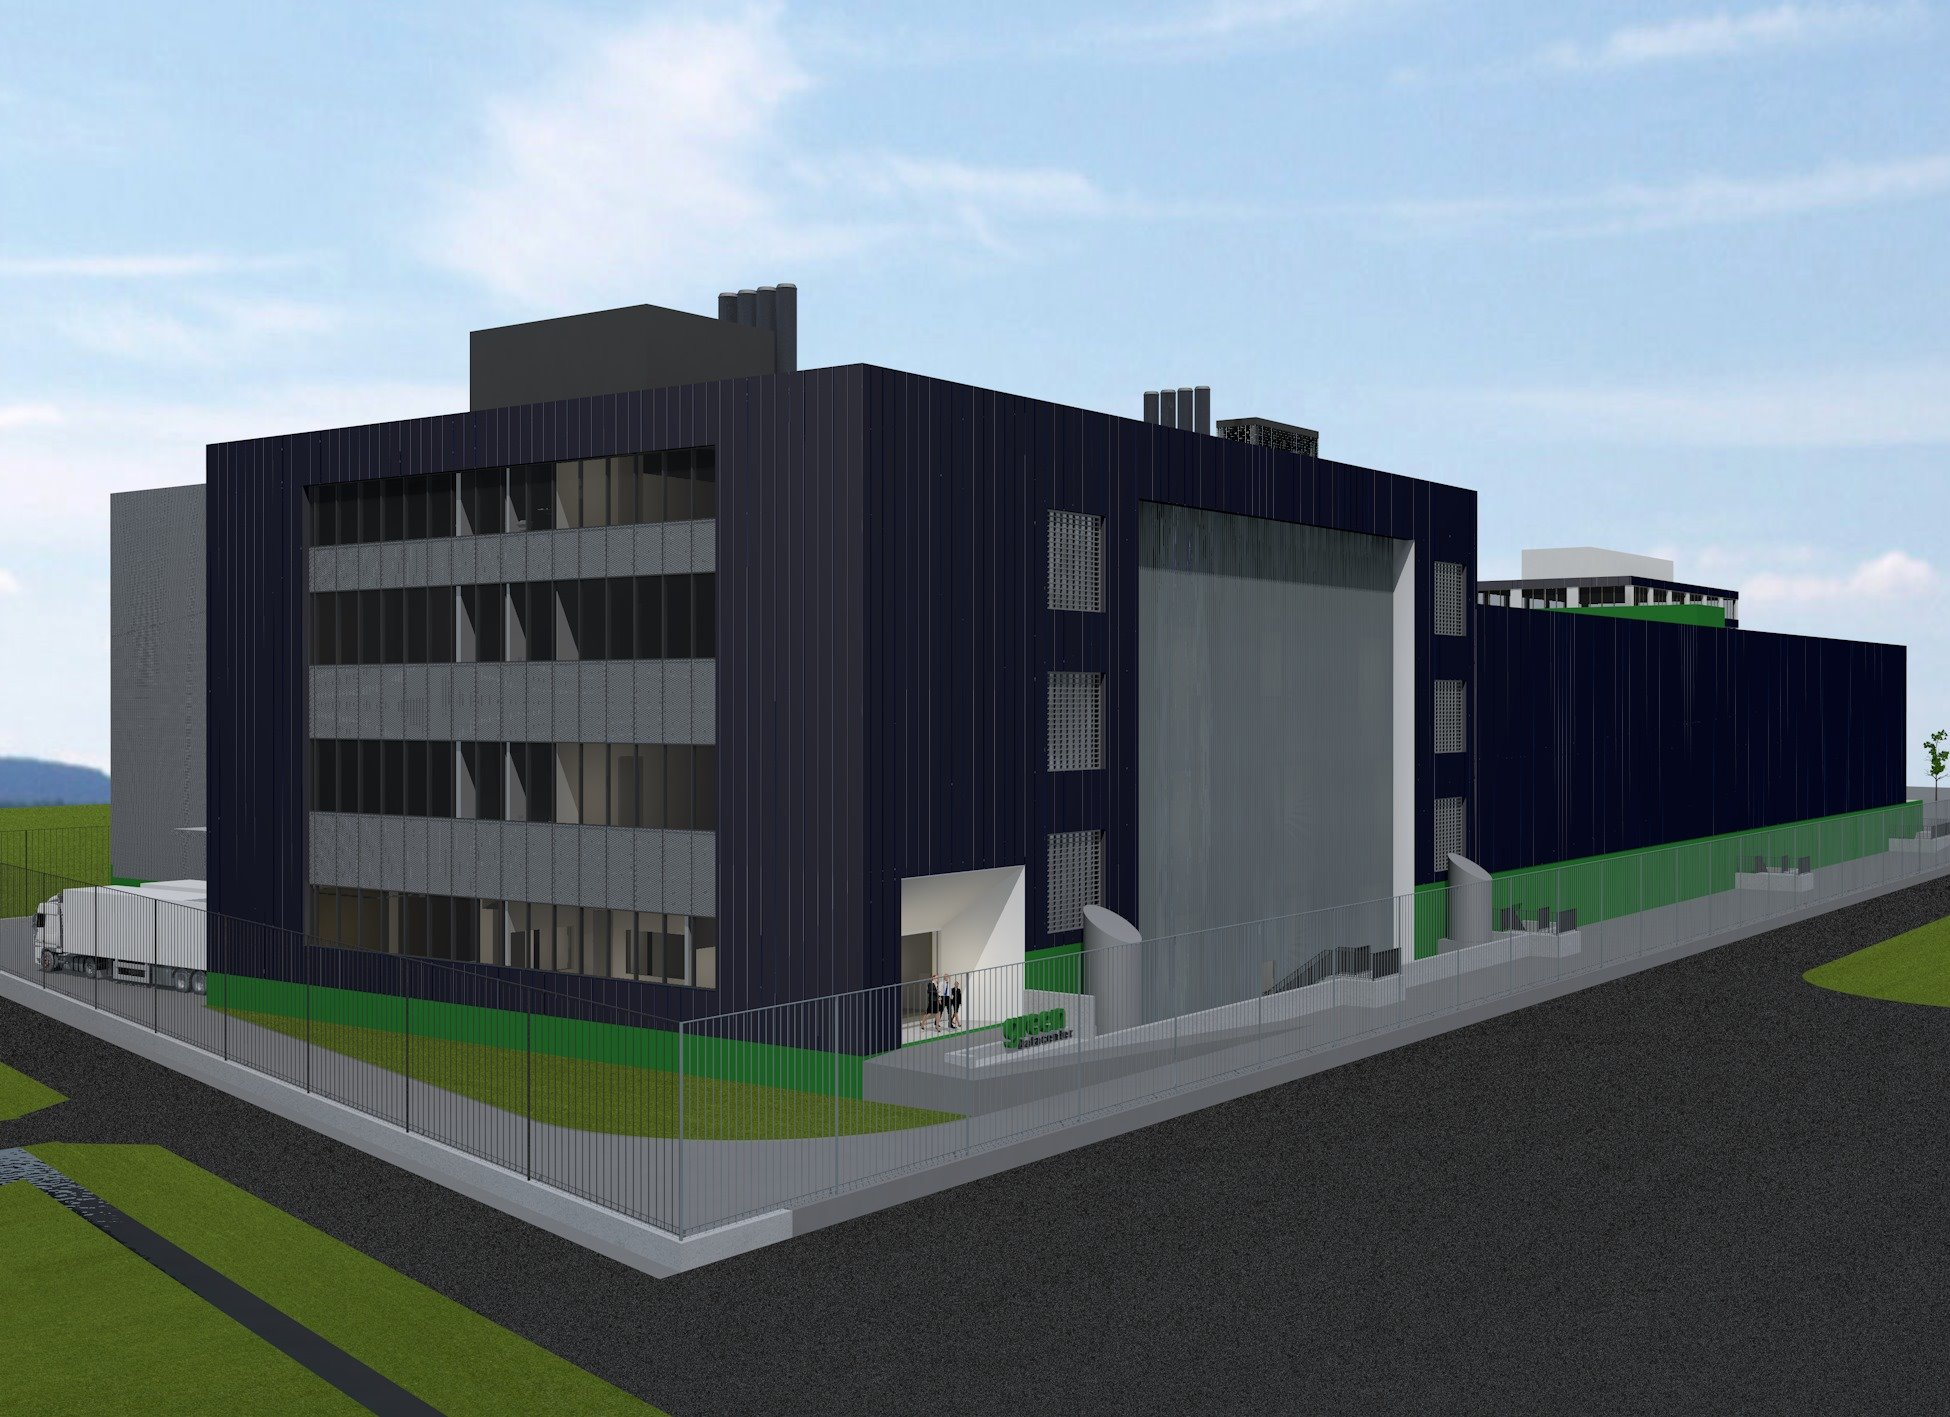 Green plant neues Modul für Datacenter in Lupfig